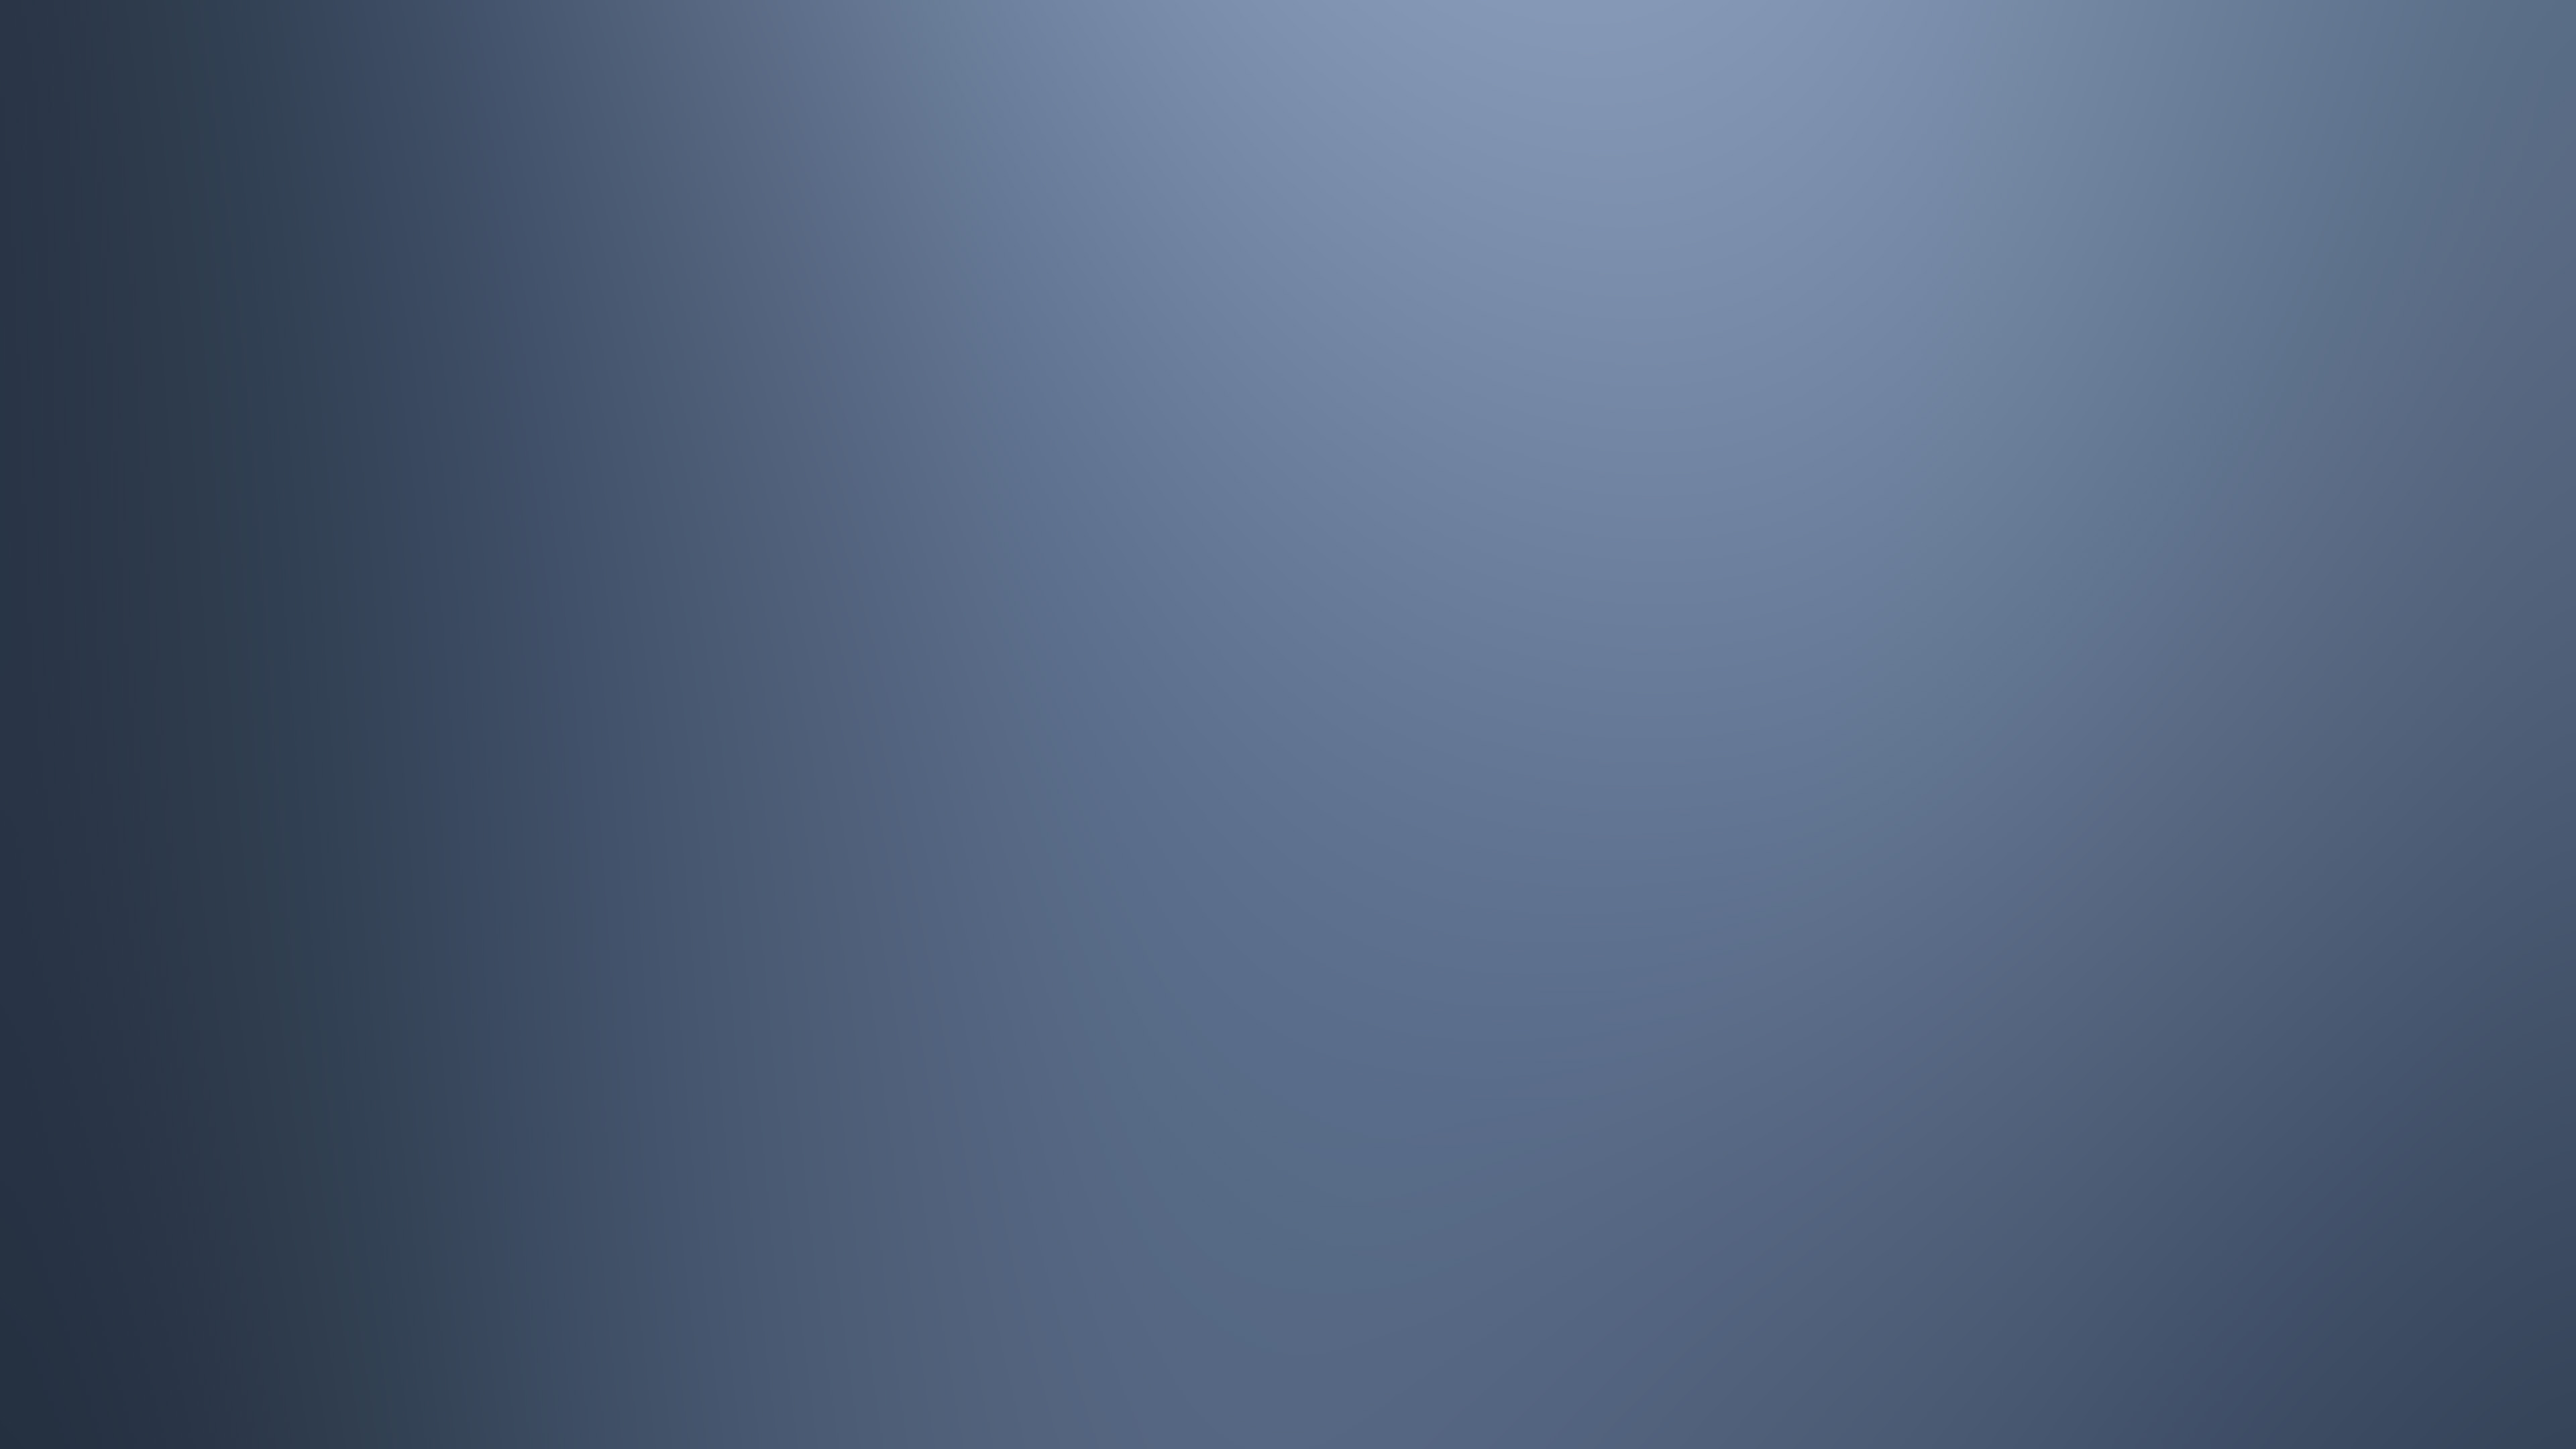 Space Wallpaper Iphone 4 I Love Papers Sf92 Blue Gray Gradation Blur